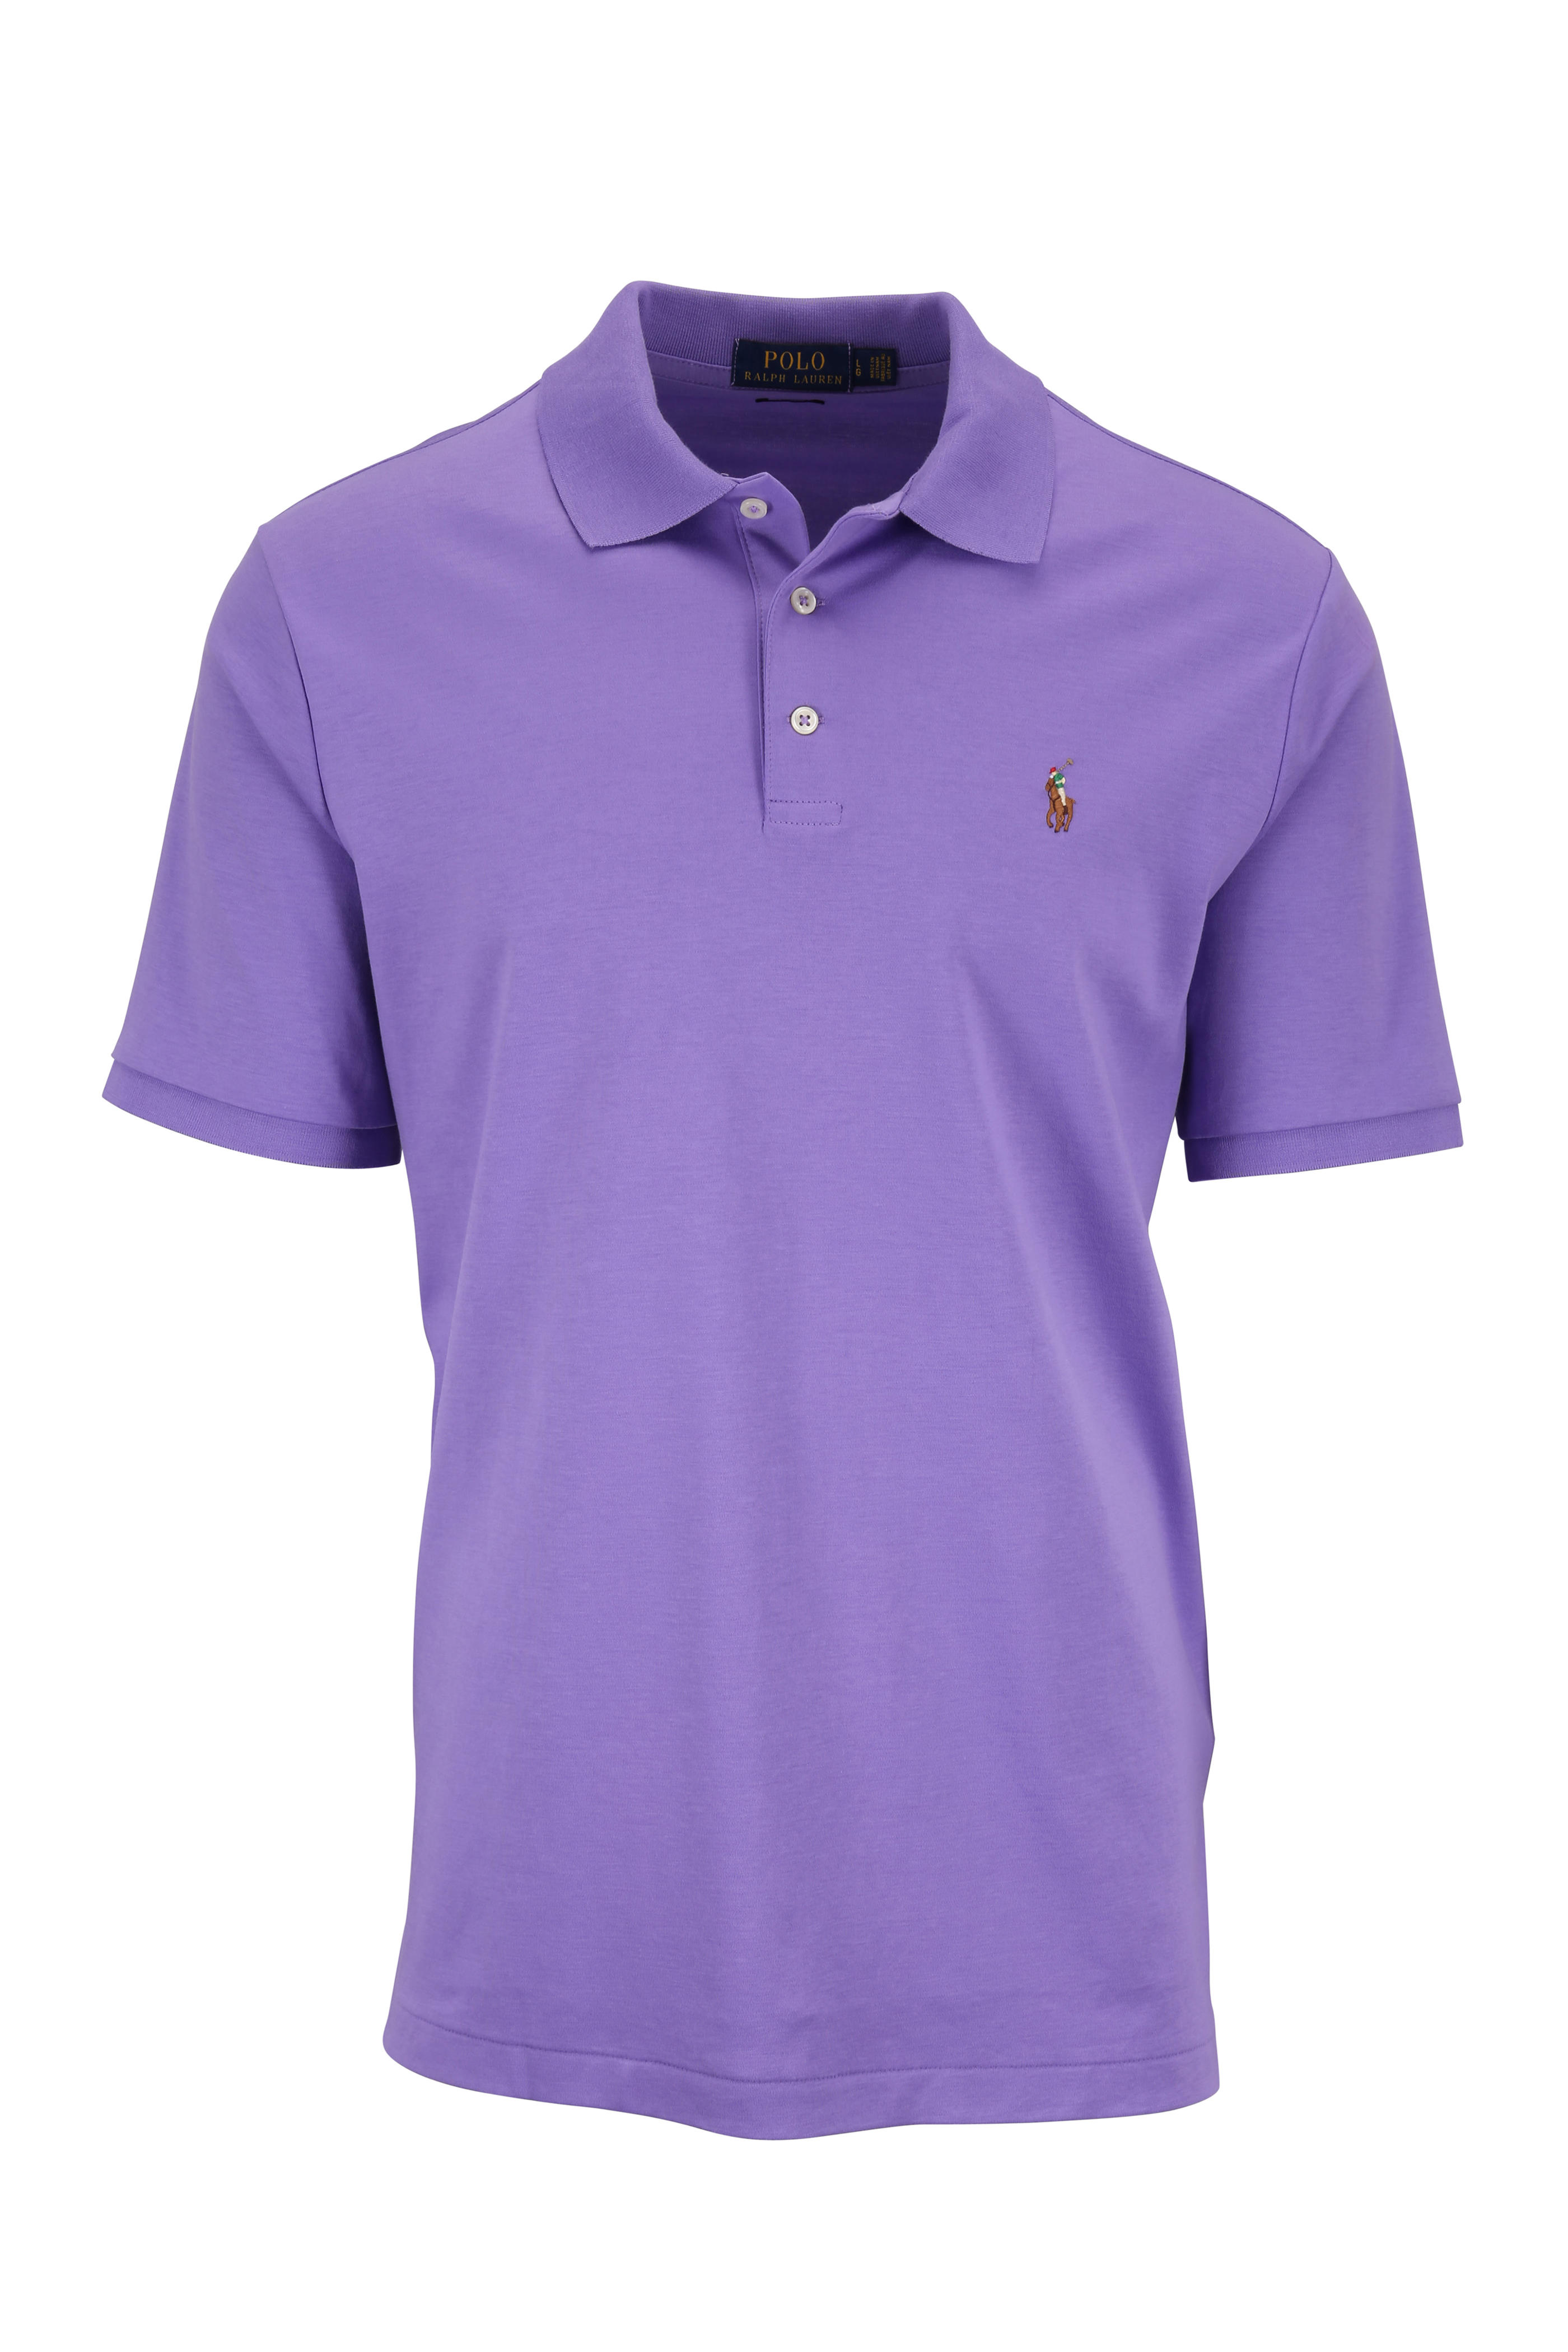 Stores Lauren Cotton Purple Polo FitMitchell Ralph Classic SLMpjUGqzV